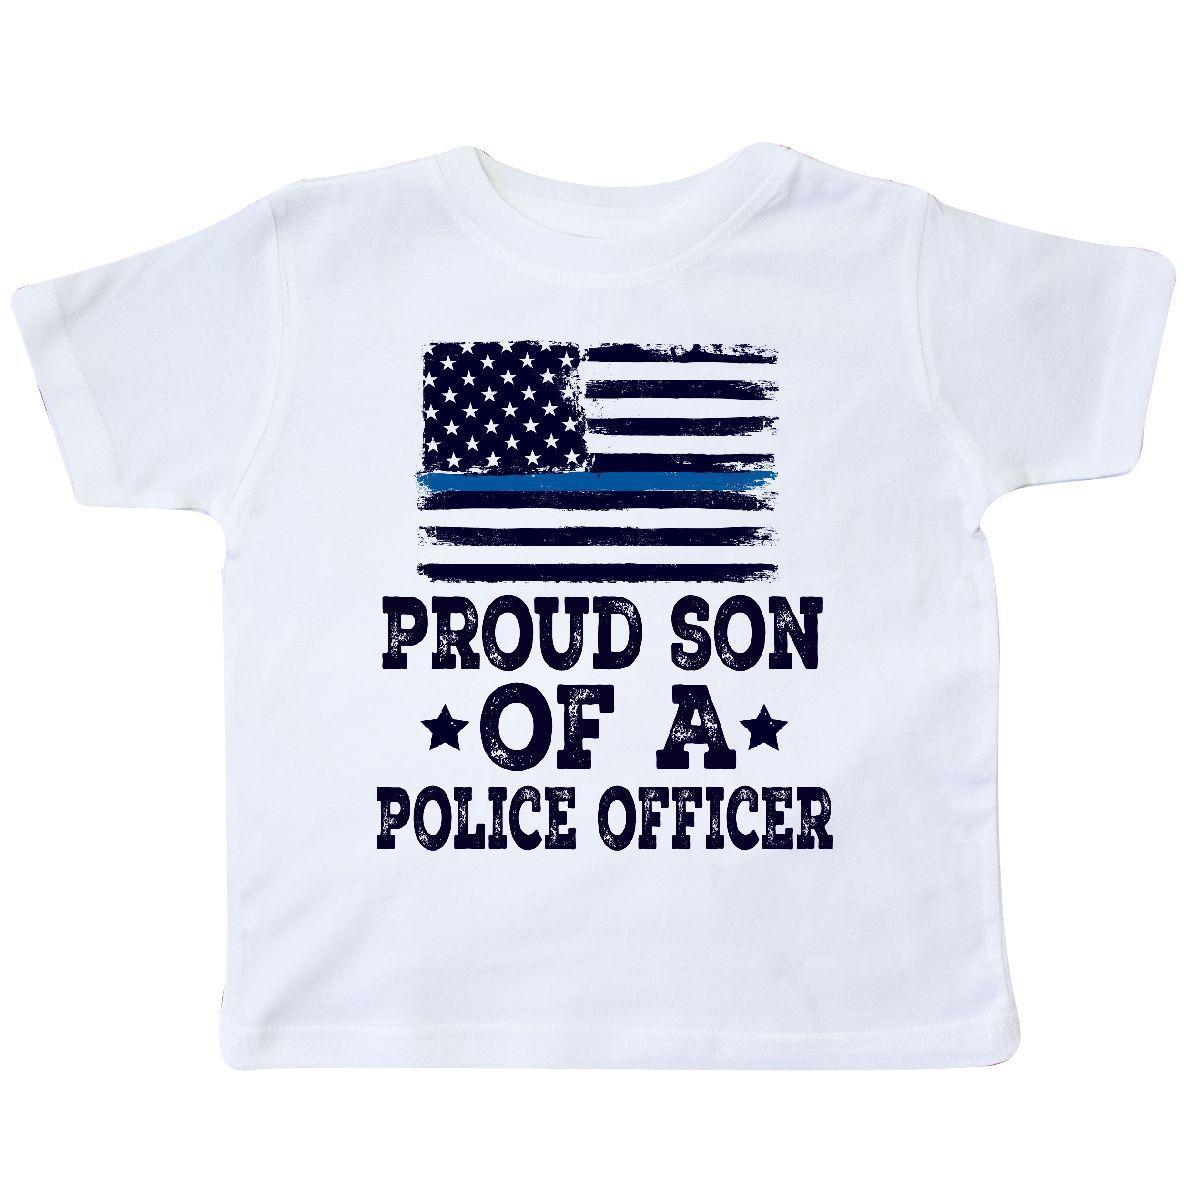 a20c44d375c29f Inktastic Police Officer Proud Son Toddler T Shirt Policeman Boys Law Flag  Blue Funny Unisex Casual Tee Gift T Shirts Online Shopping Buy T Shirts  From ...